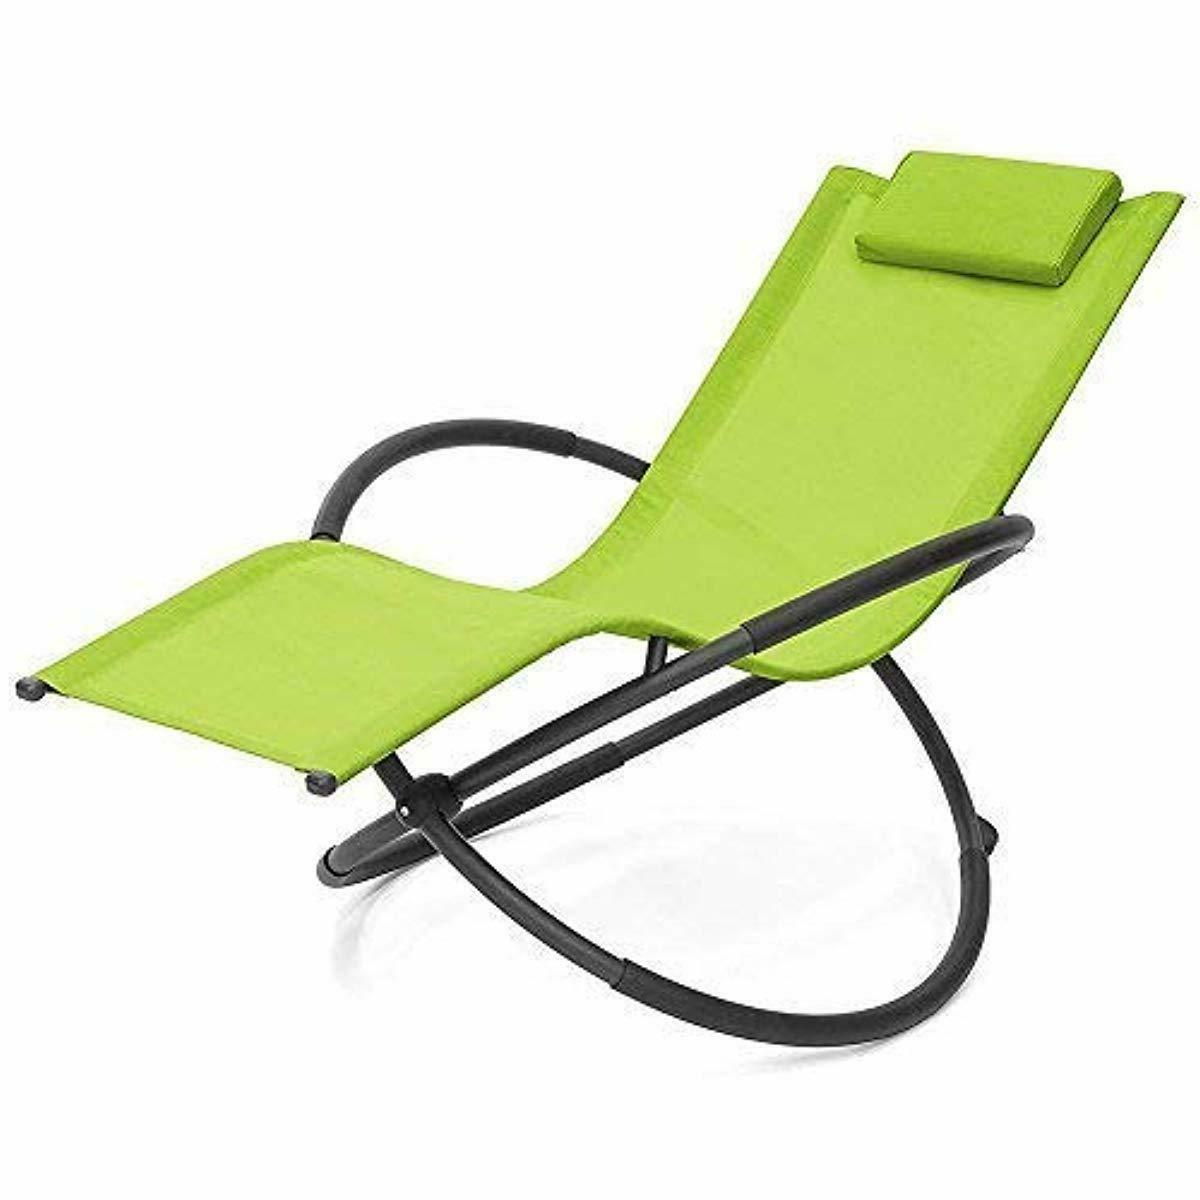 Details About Grearden Outdoor Lounge Chair Orbital Zero Gravity Patio Chaise Lounge Rocking L Within Well Liked Easy Outdoor Rocking Lounge Chairs (View 7 of 25)